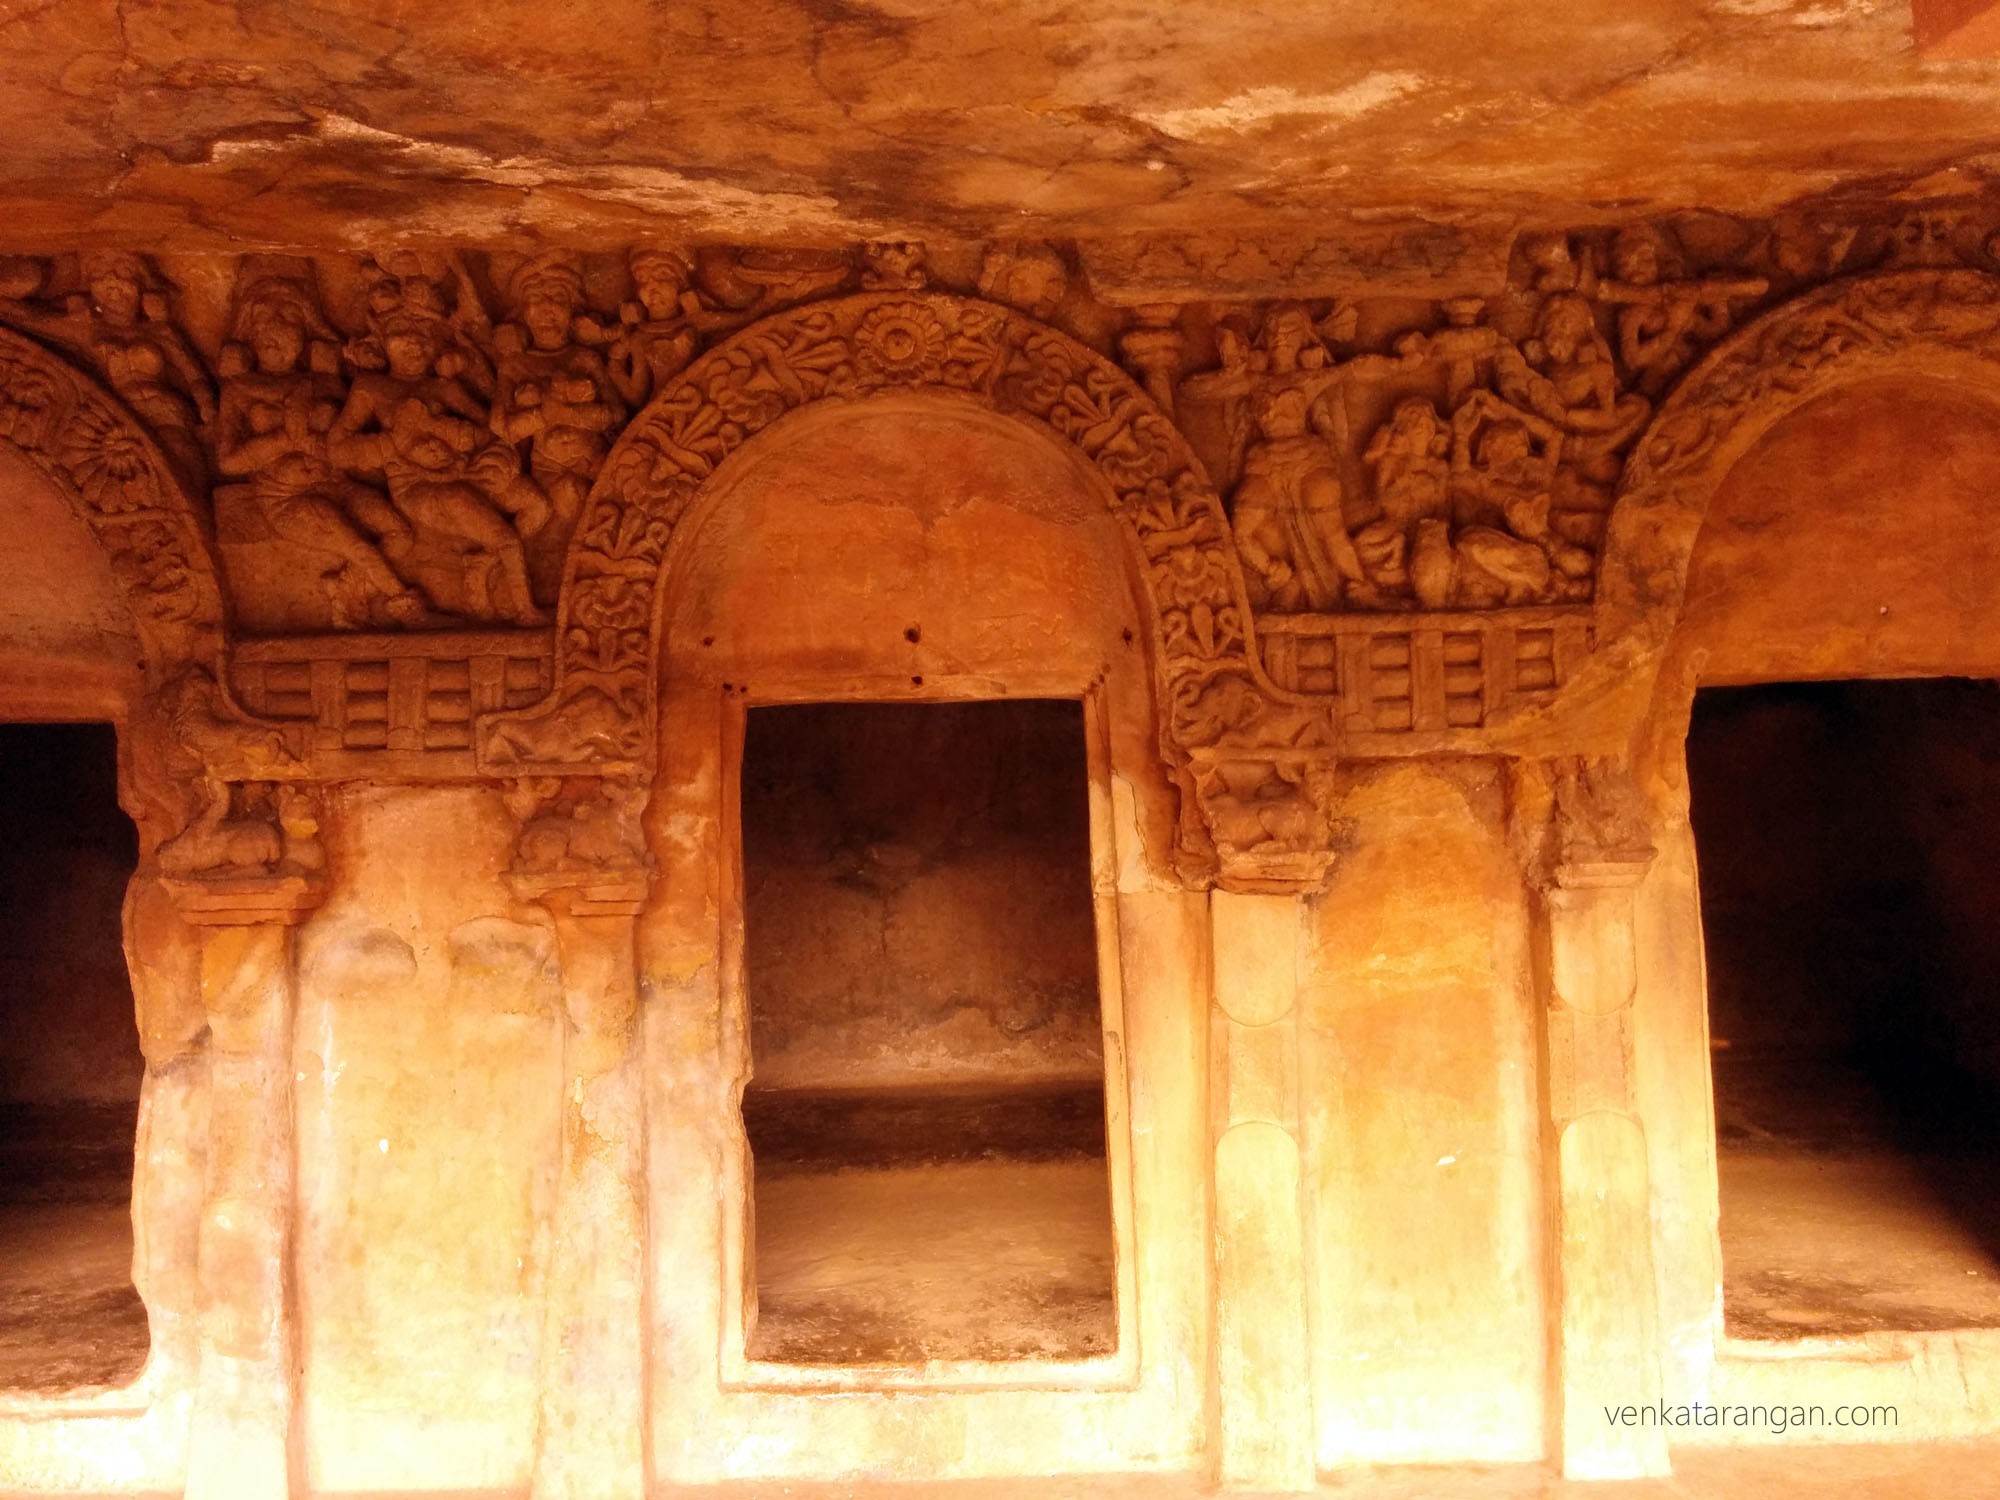 Carvings in Udayagiri and Khandagiri Caves